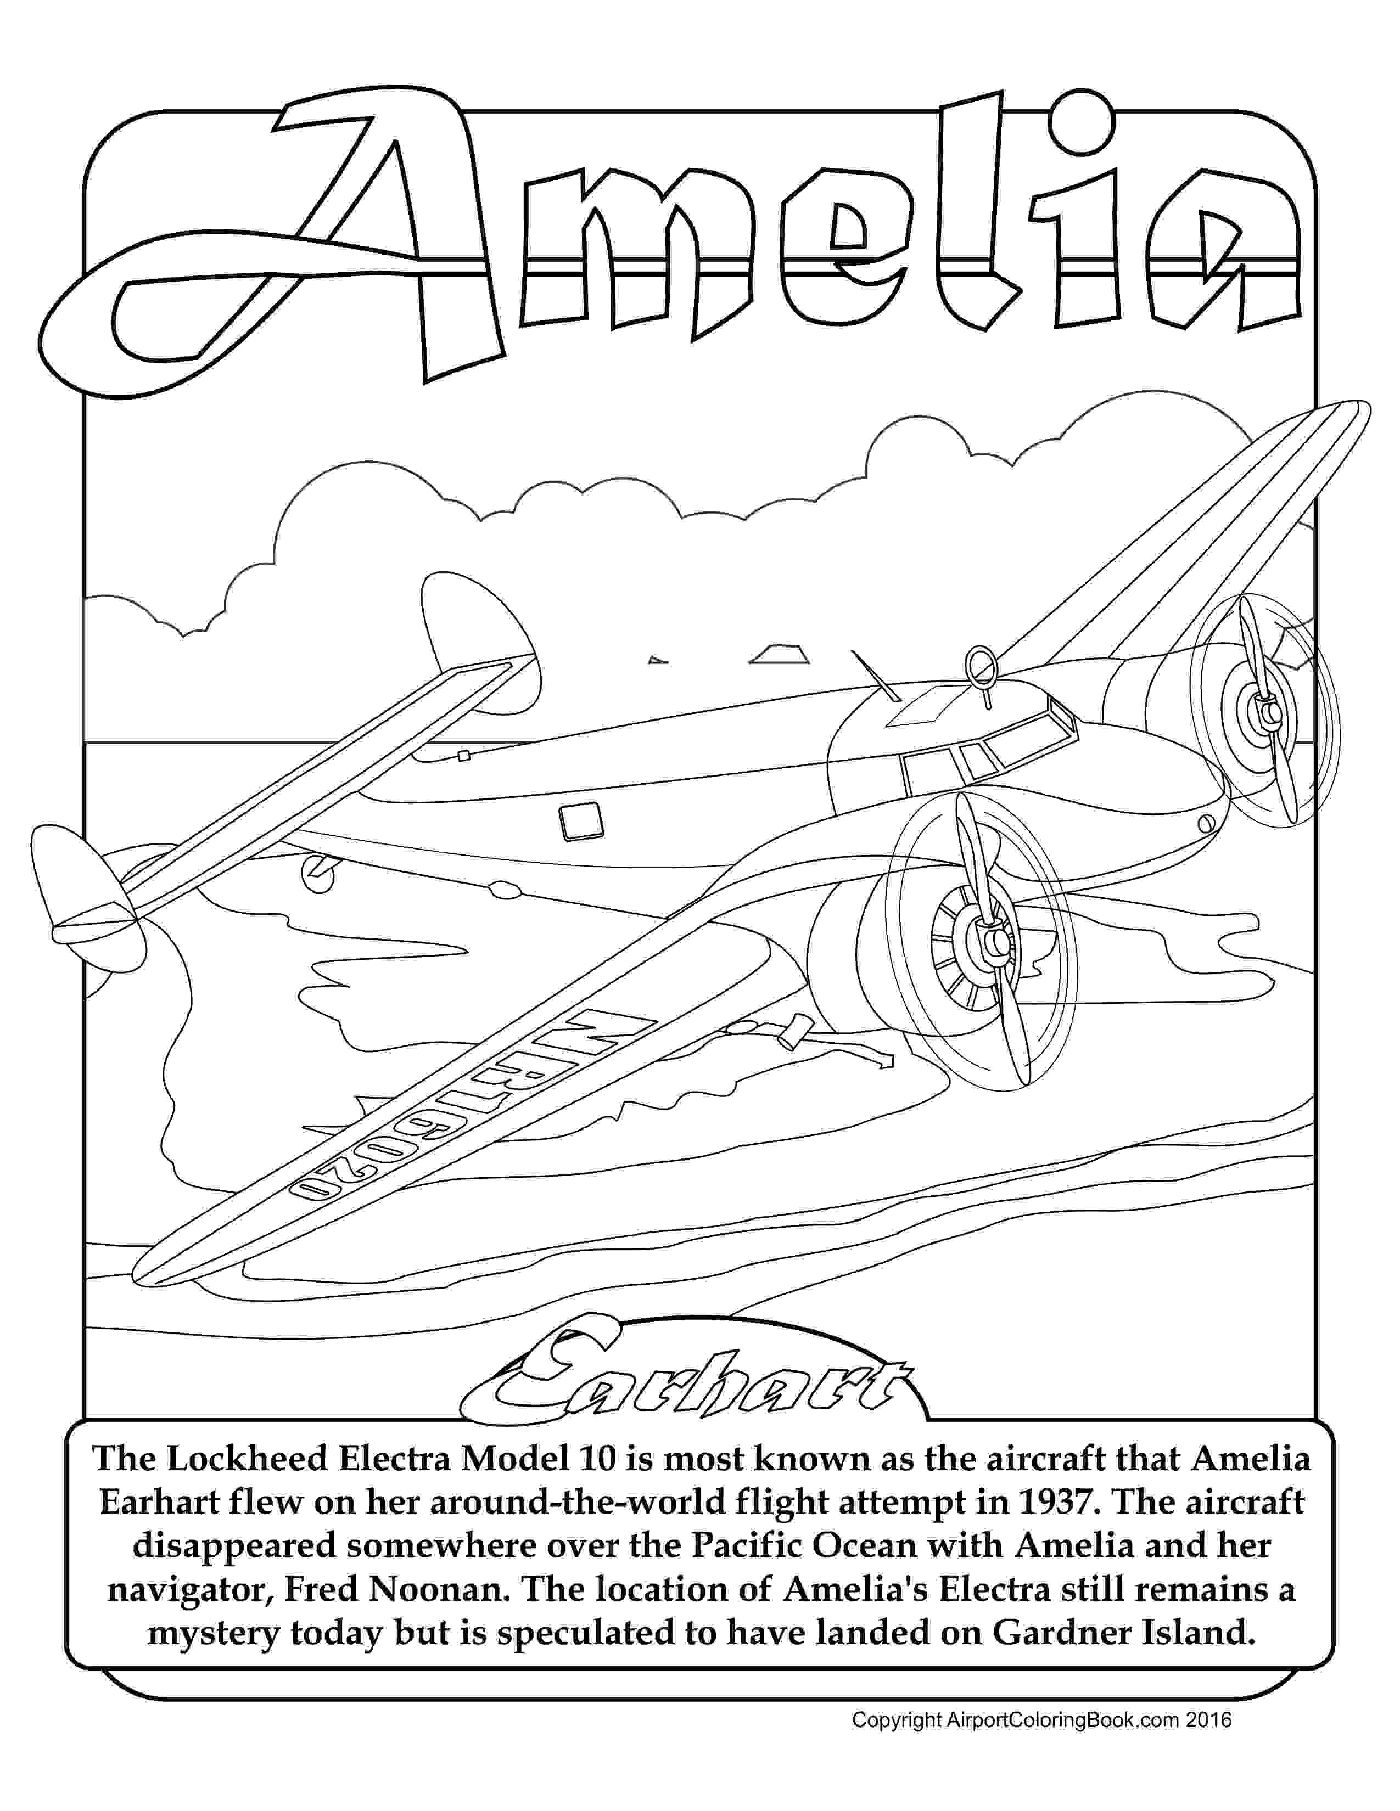 1400x1811 Airport Coloring Book Amelia Earhart Lockhead Electra For Coloring